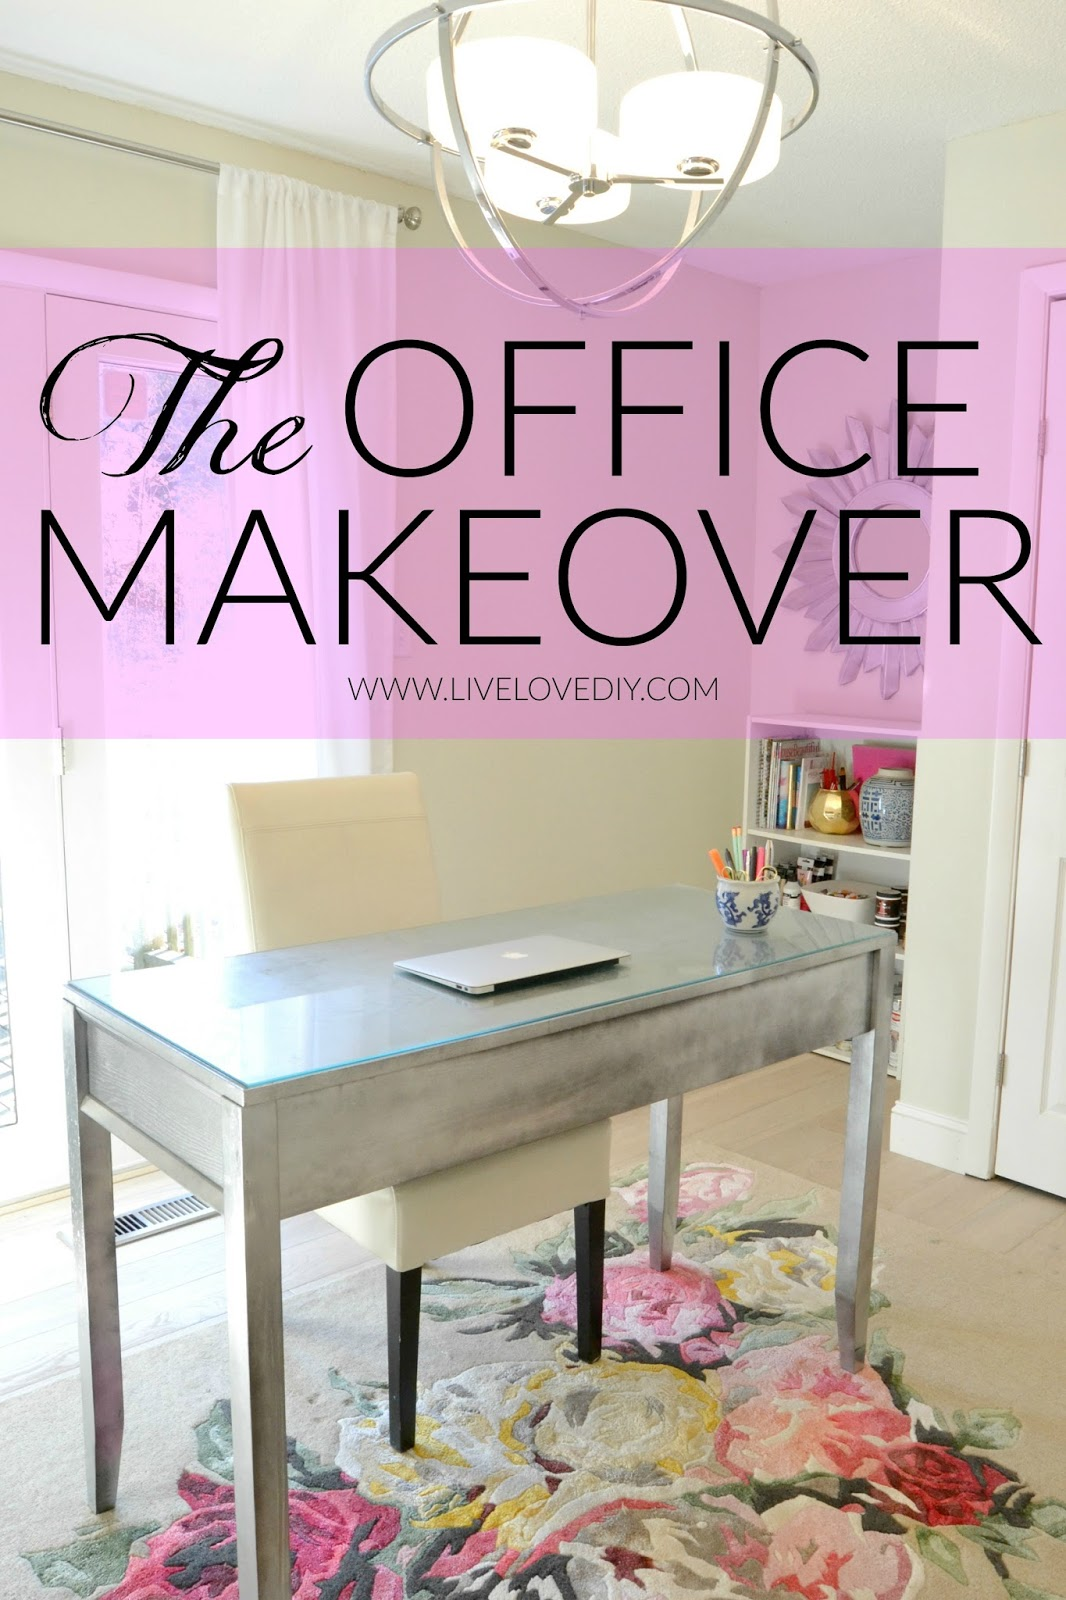 livelovediy home office decorating ideas my latest office makeover